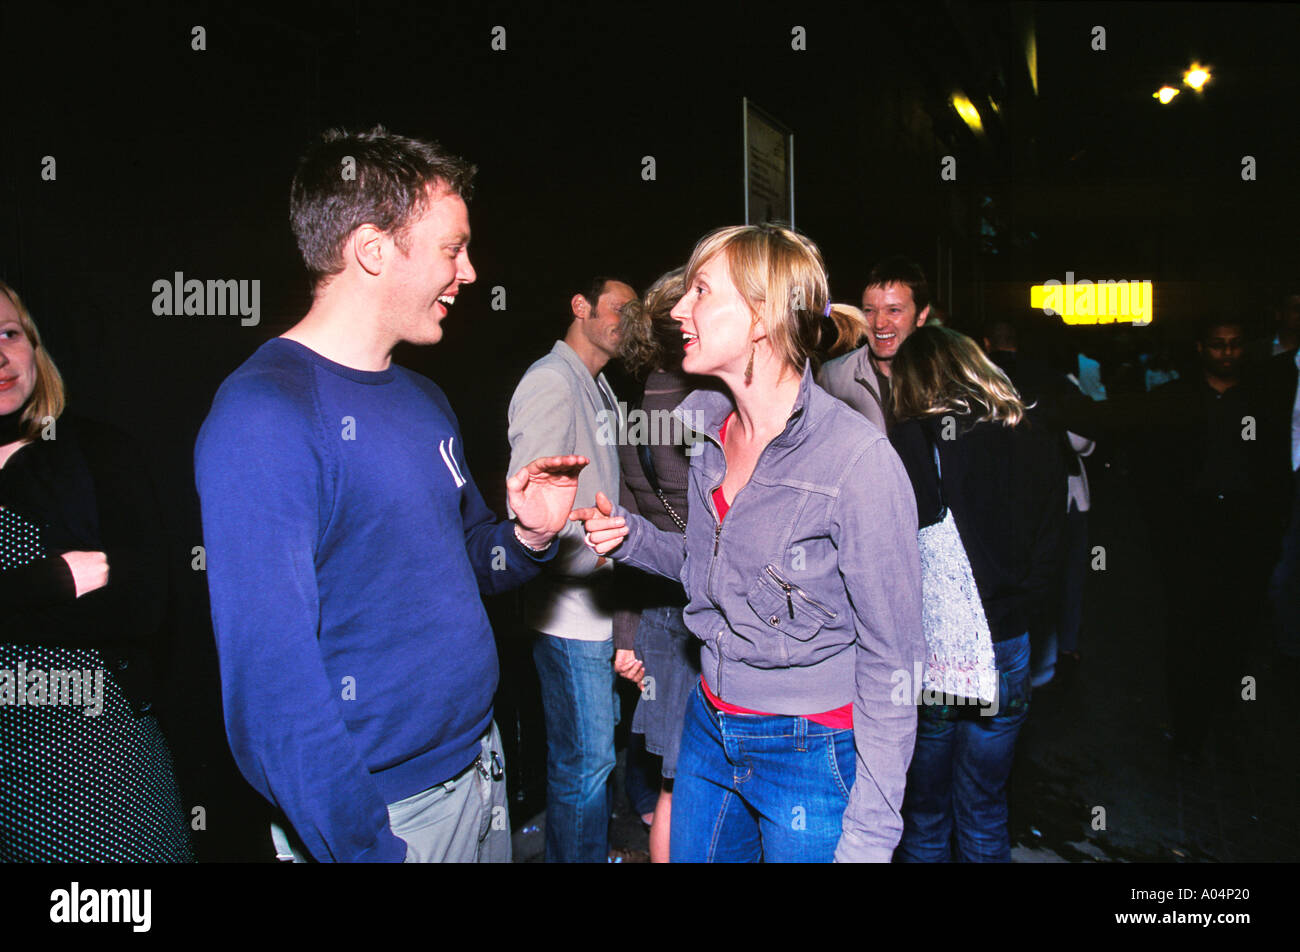 Couple in queue outside 333 nightclub in Shoreditch East London - Stock Image